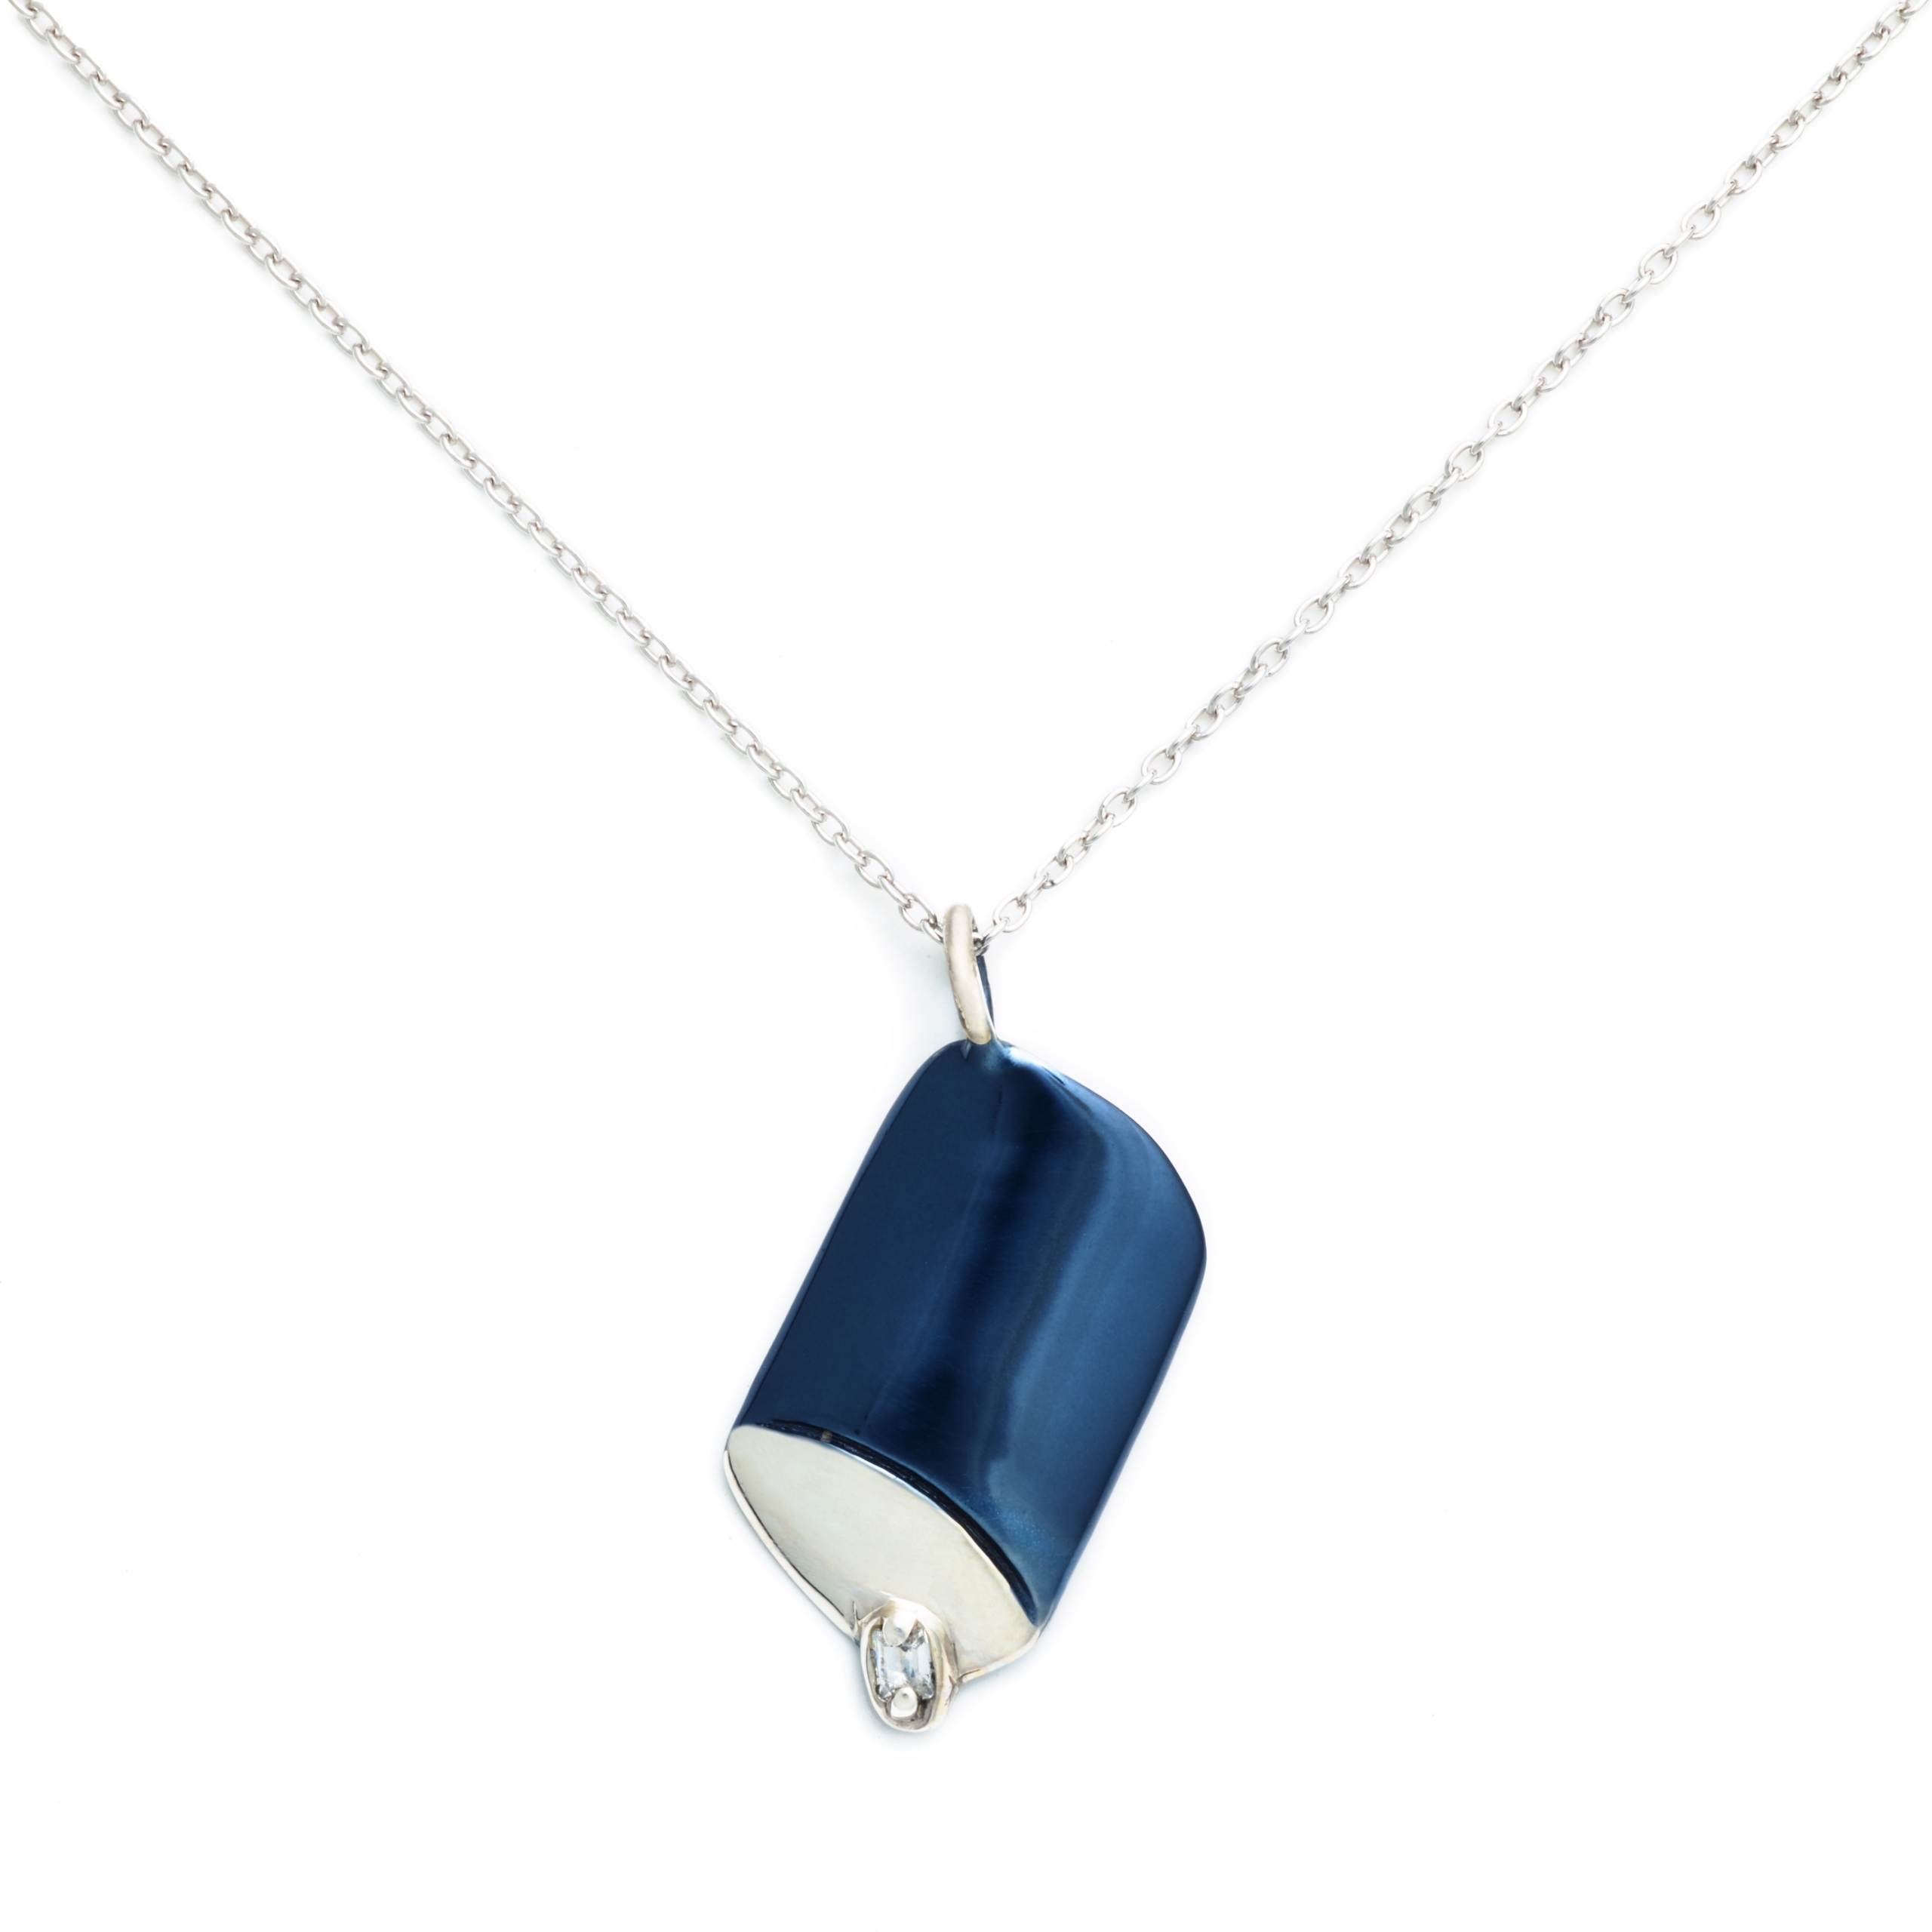 Salt Canister Necklace with Zirconia, Blue Enamel Plated